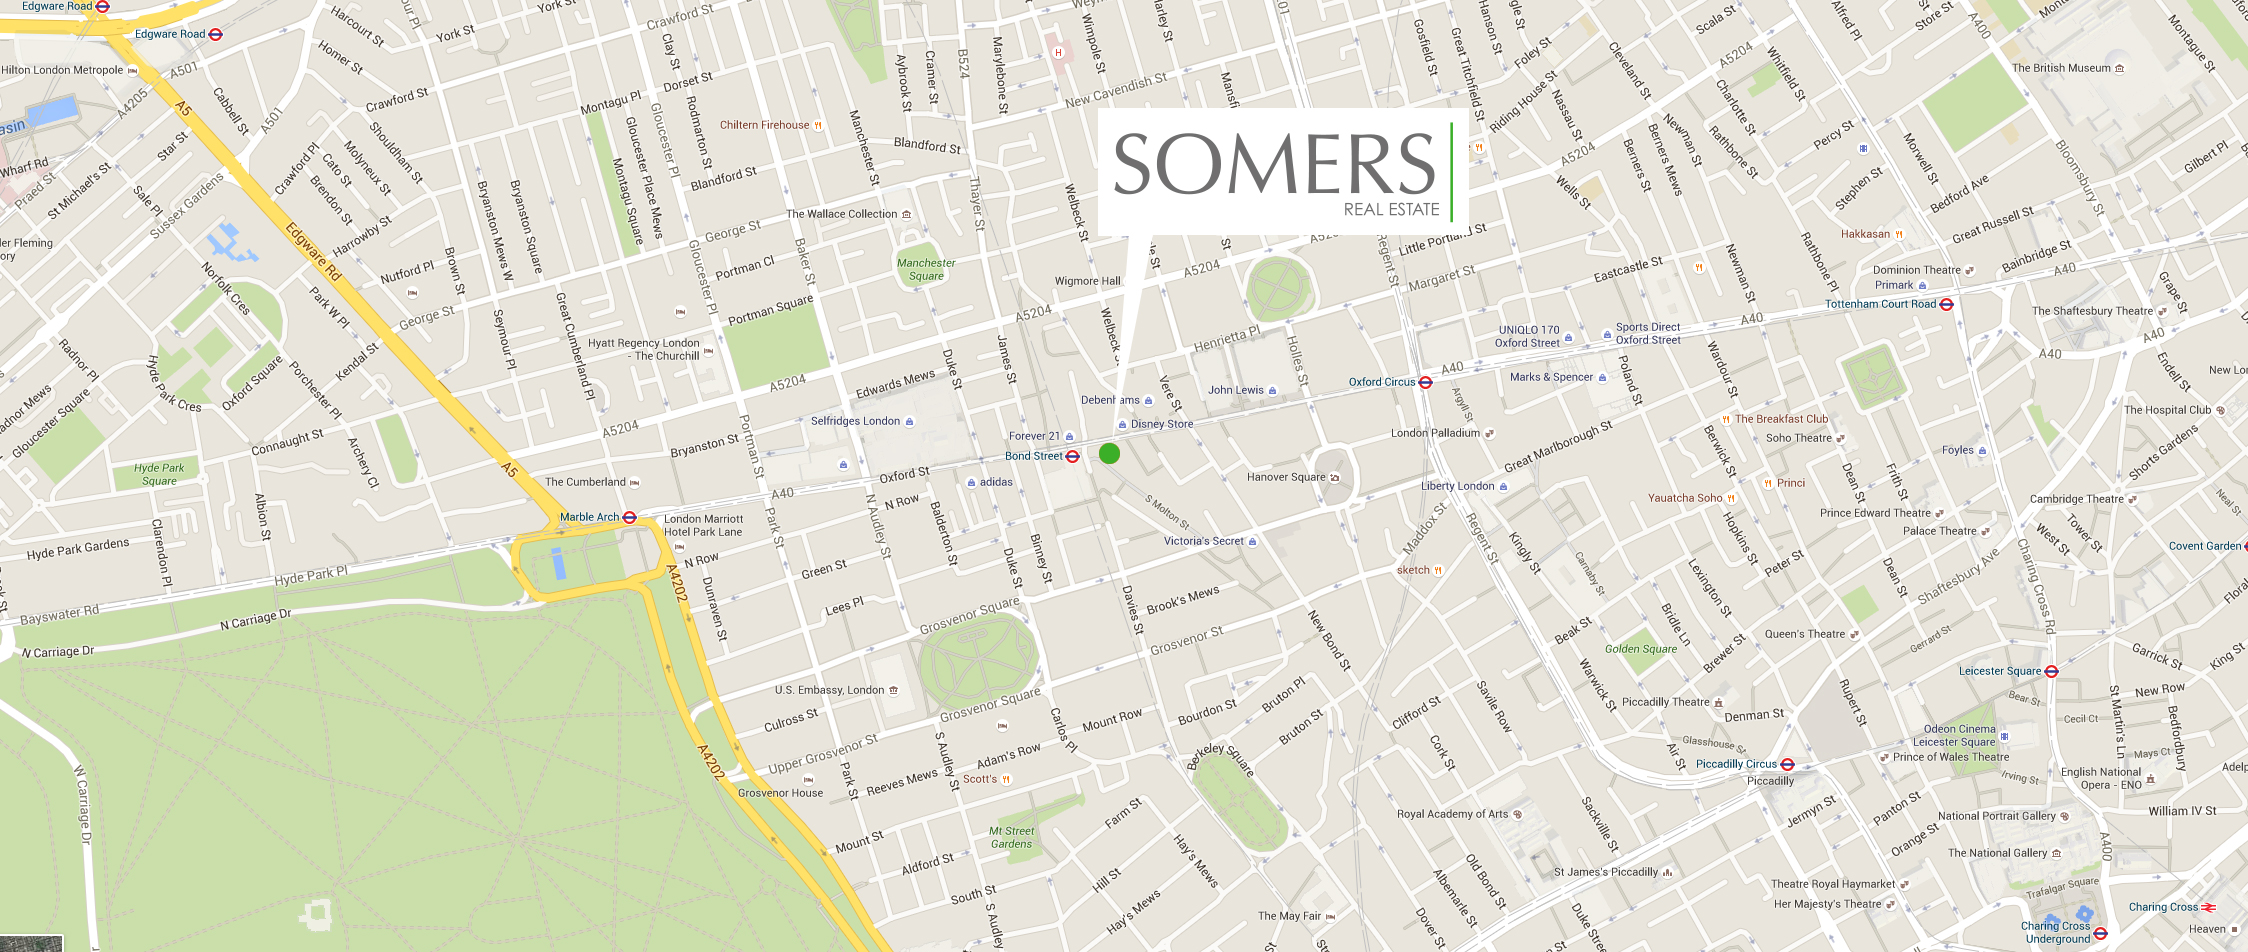 Somers London Real Estate Map on london real estate chart, london real estate listings, london golf courses map, greater-london postcode map,